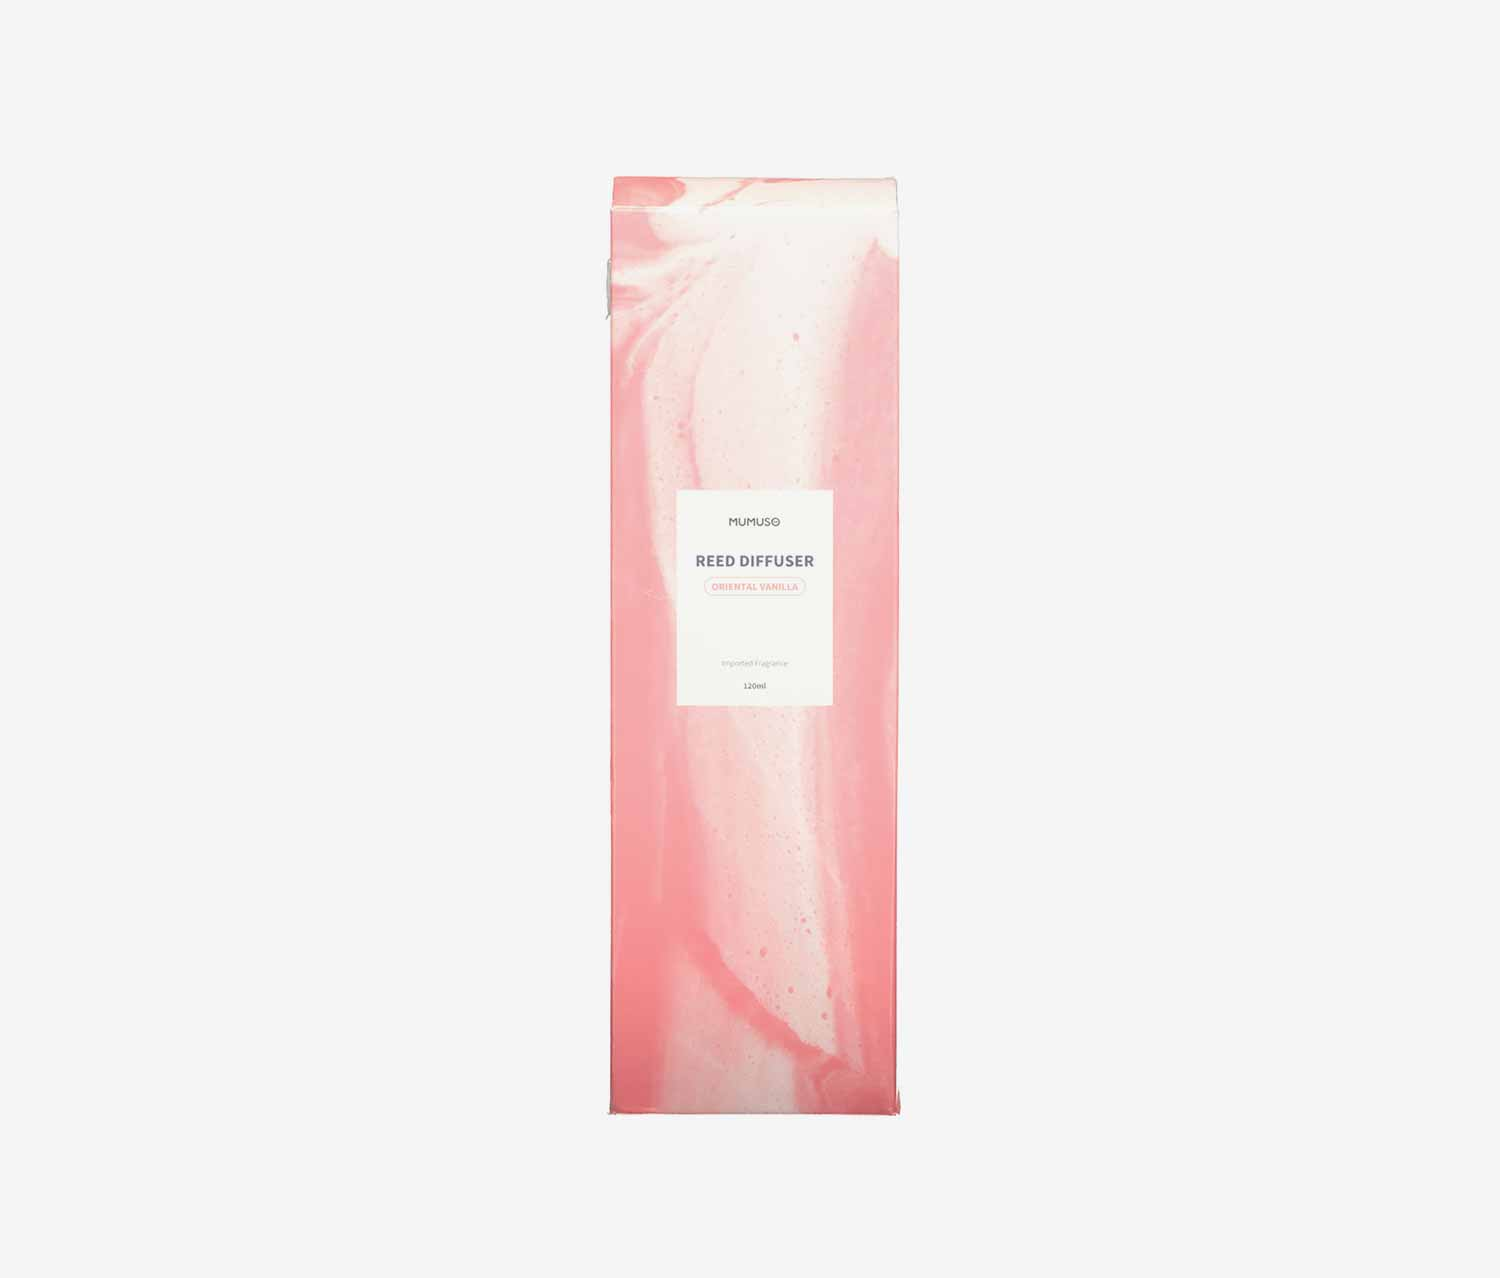 Dream Reed Diffuser, Pink